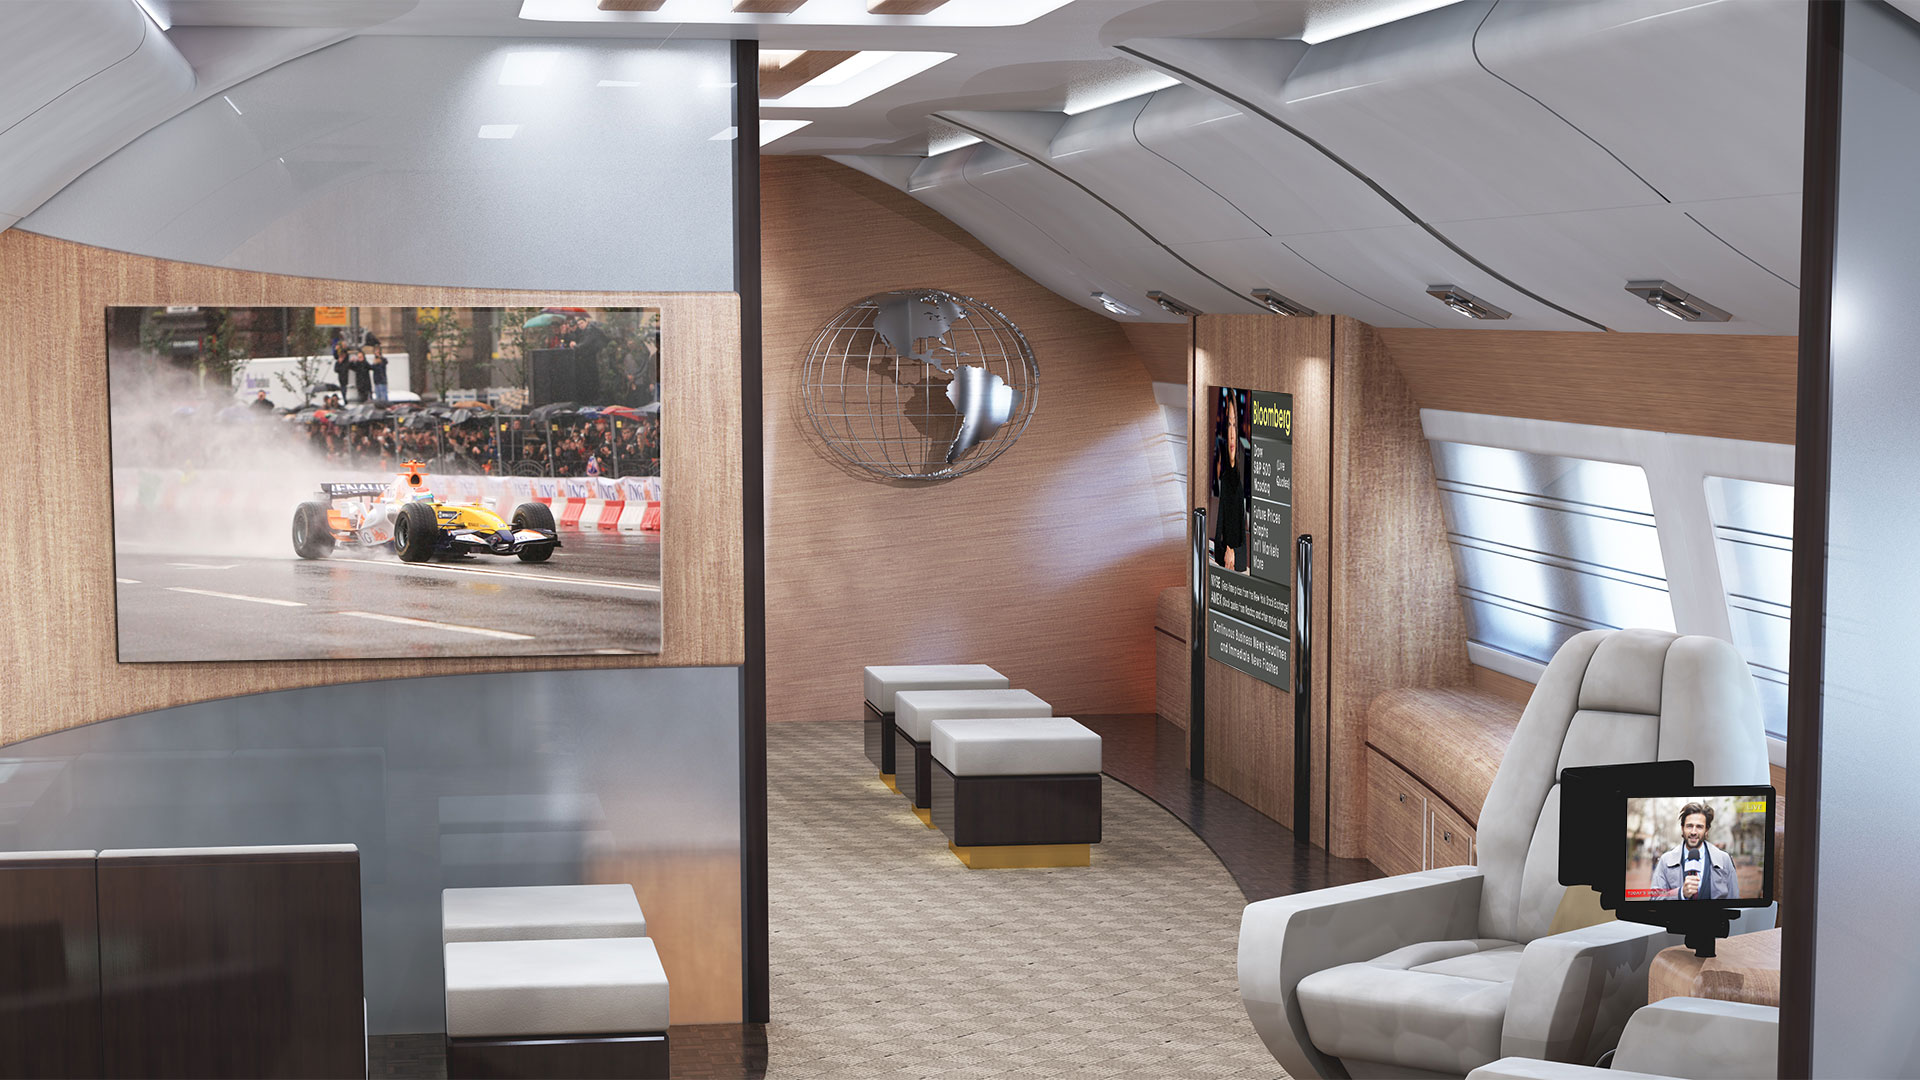 Business Jet Cabin with Tailwind on devices. Racecar on television and weatherman on tablet